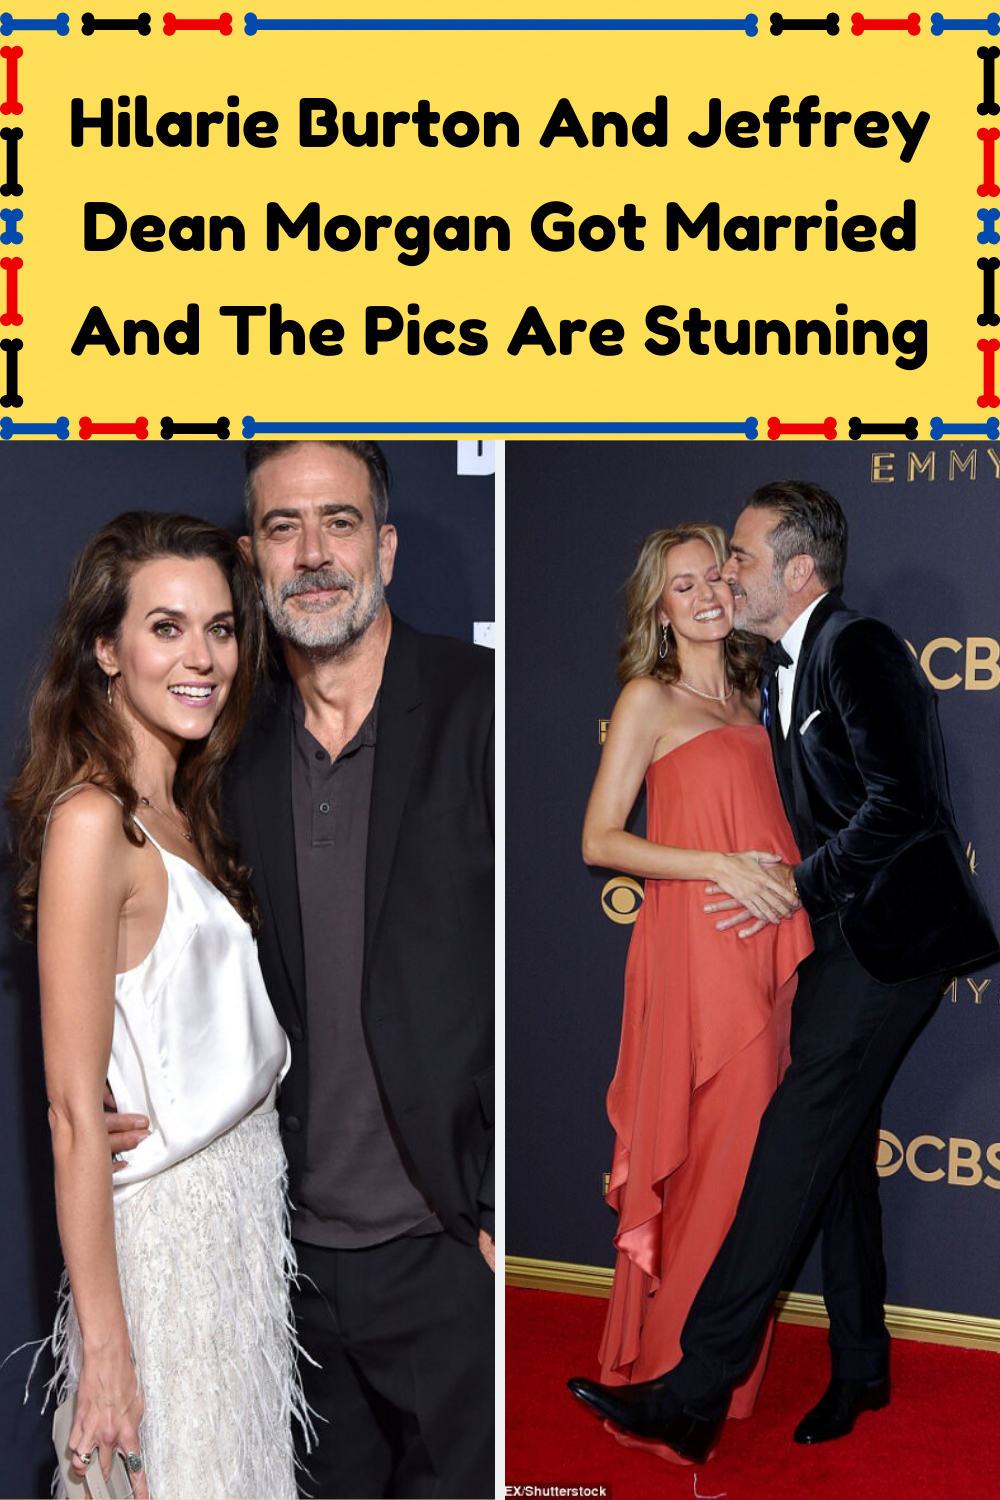 Hilarie Burton And Jeffrey Dean Morgan Got Married And The ...